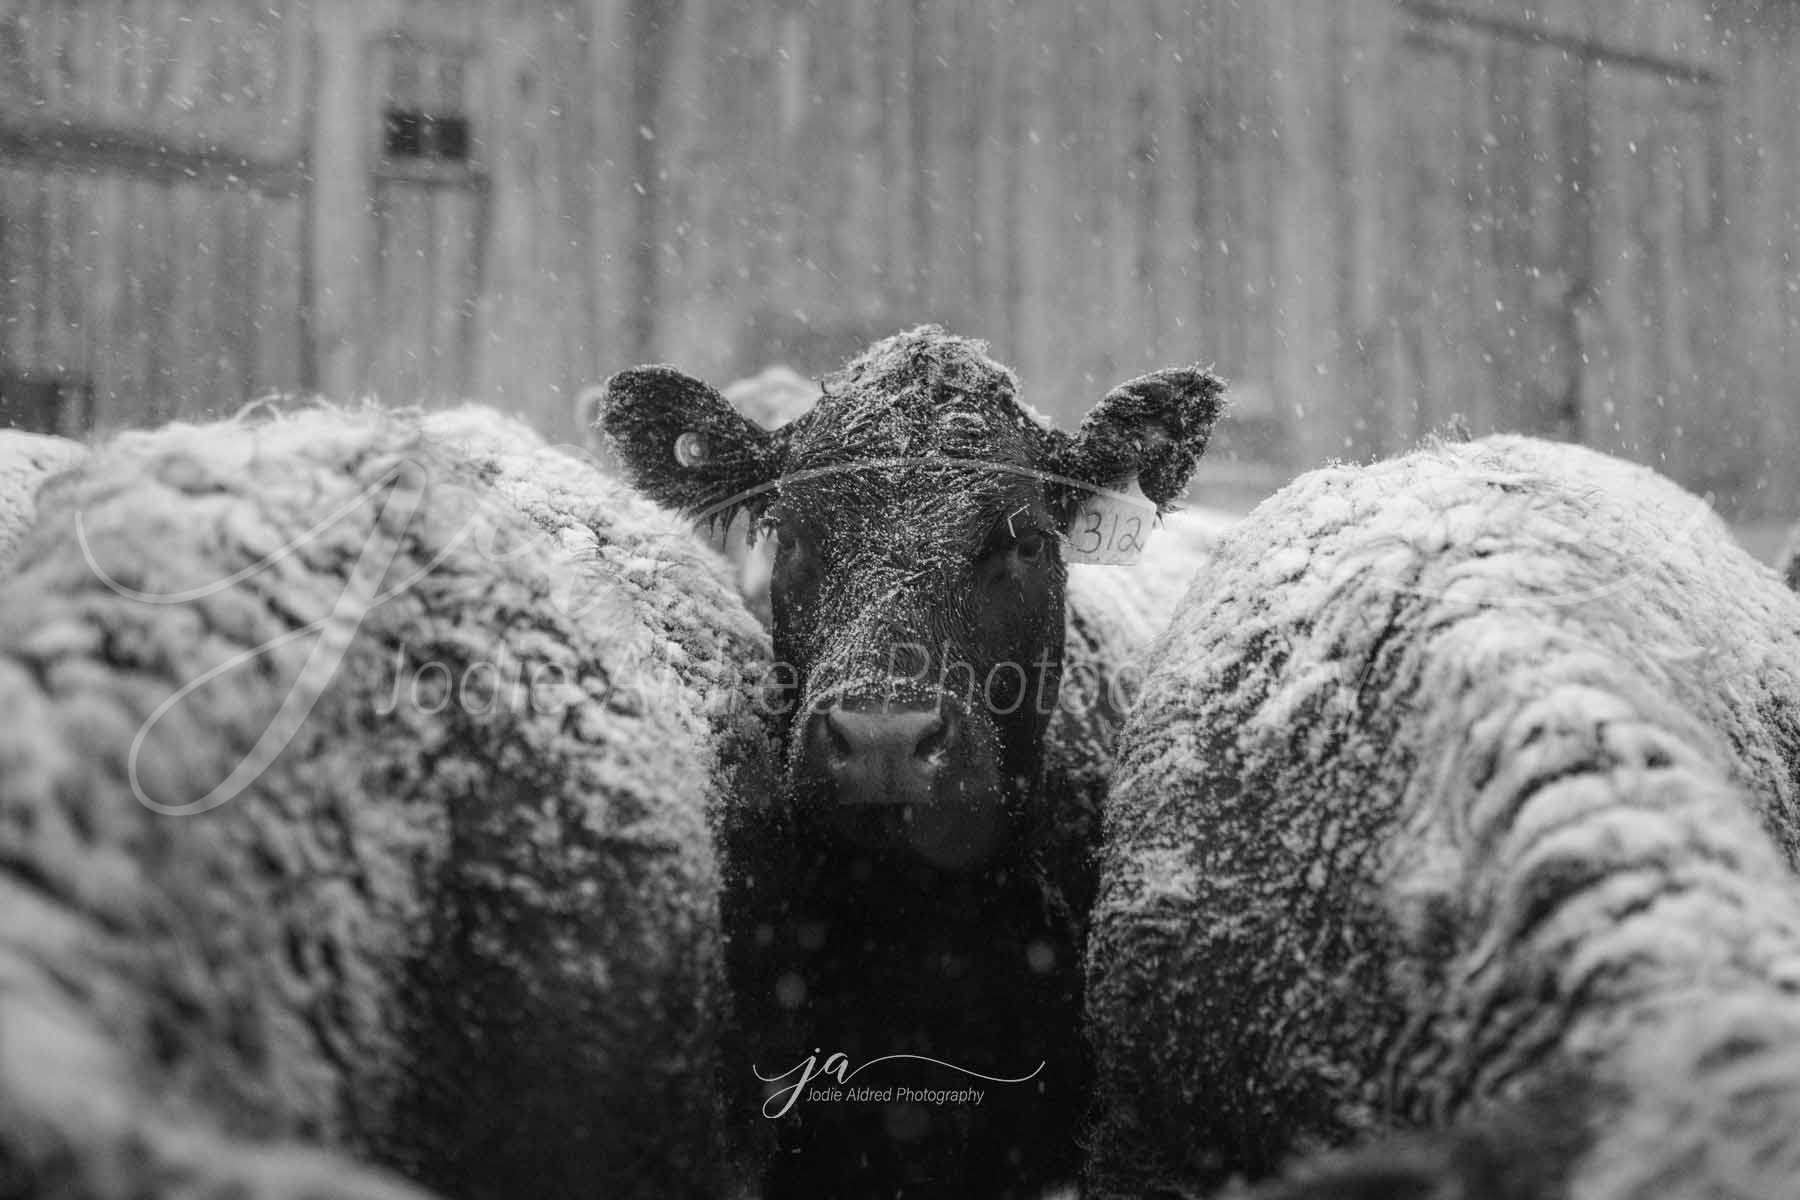 Jodie-Aldred-Photography-Ontario-Agriculture-Photographer-cattle-outdoors-barnyard-snow-winter.jpg